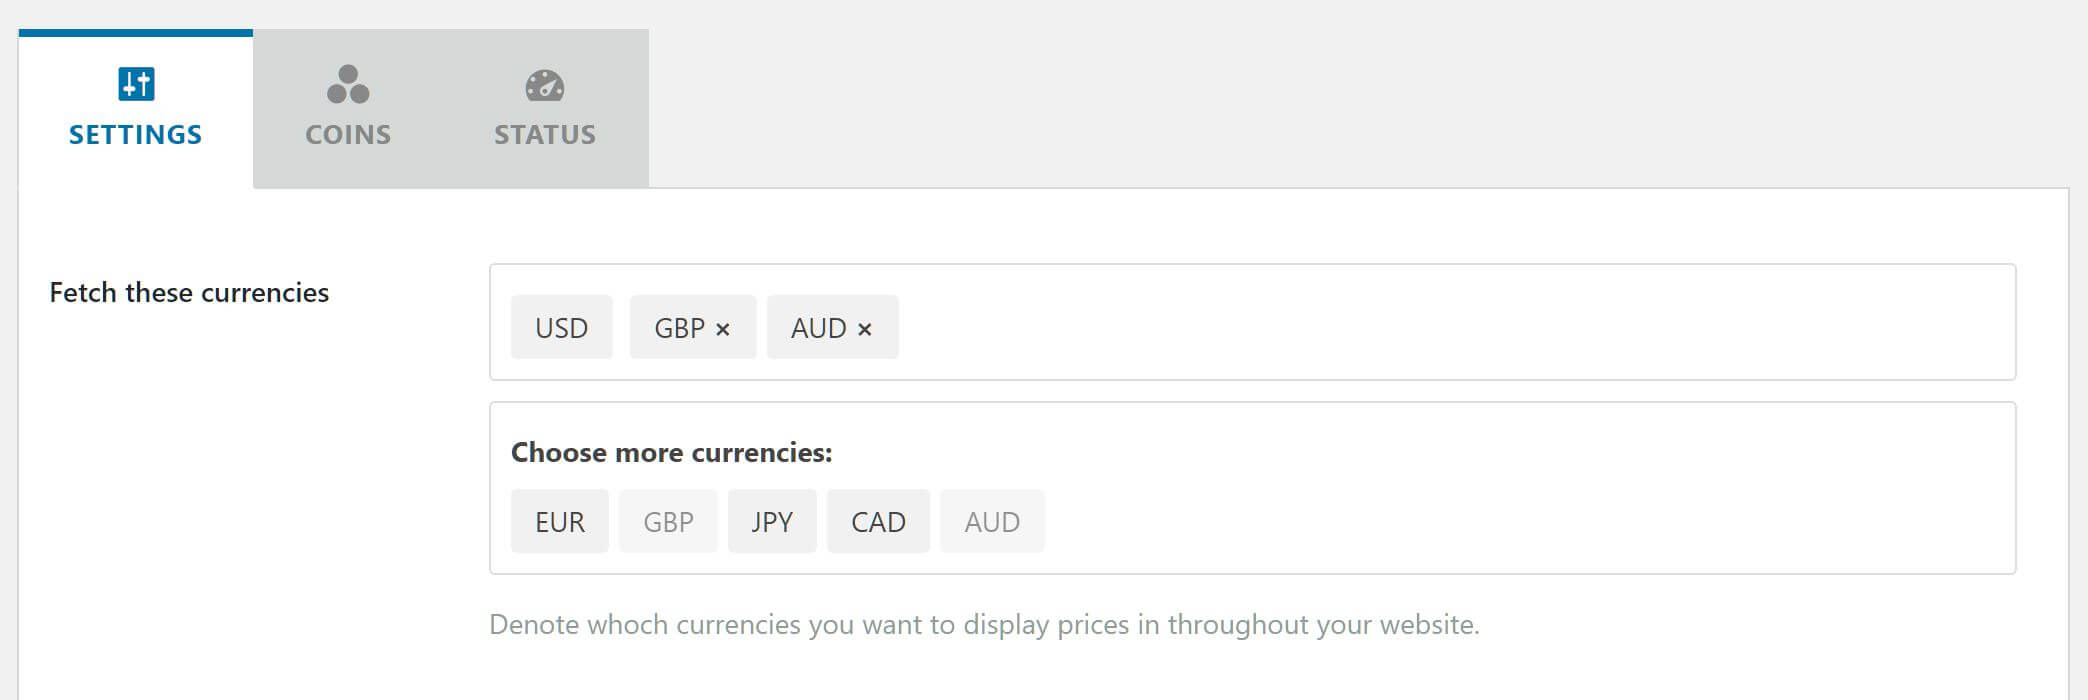 Select currencies